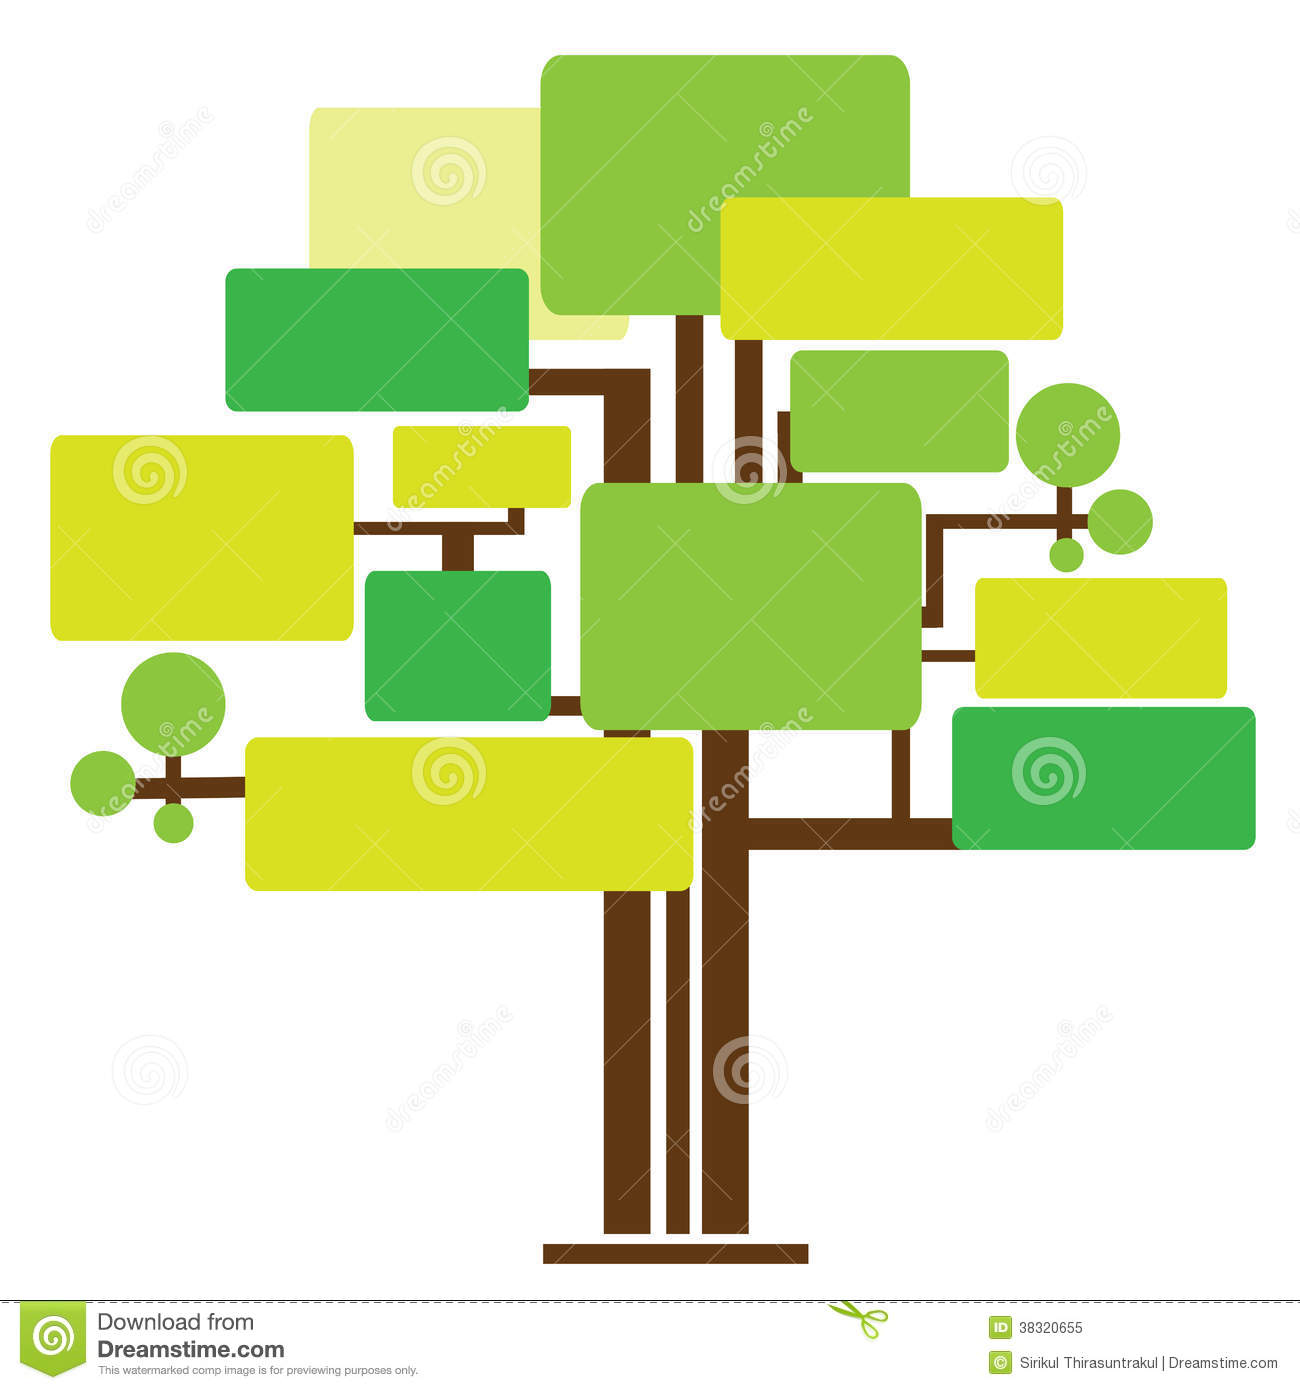 Illustrationn of tree template stock illustration illustration of illustrationn of tree template cheaphphosting Gallery